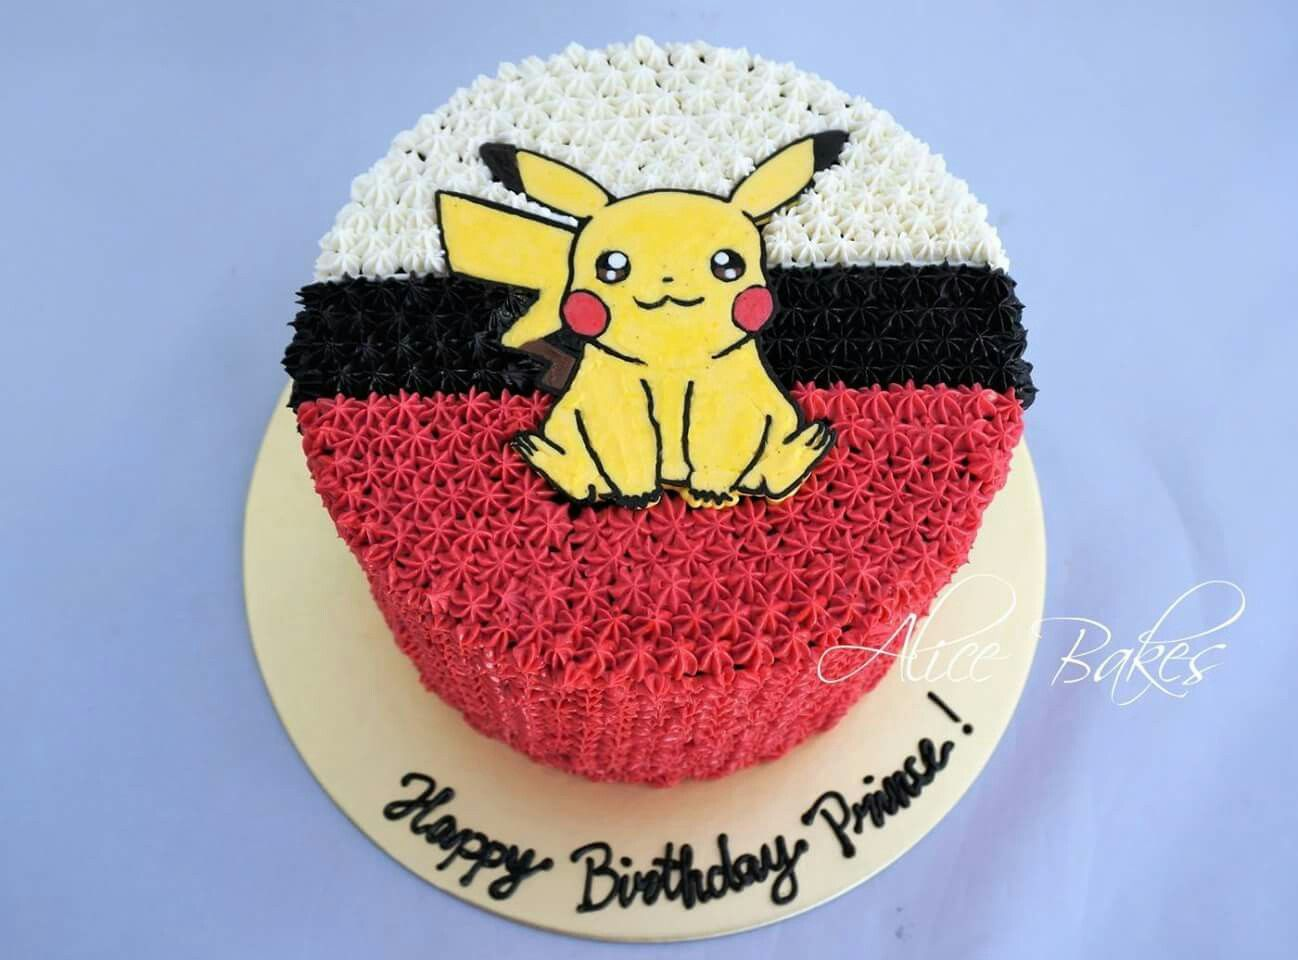 Handpiped Buttercream Customised Cakes Pokemon Pikachu Theme